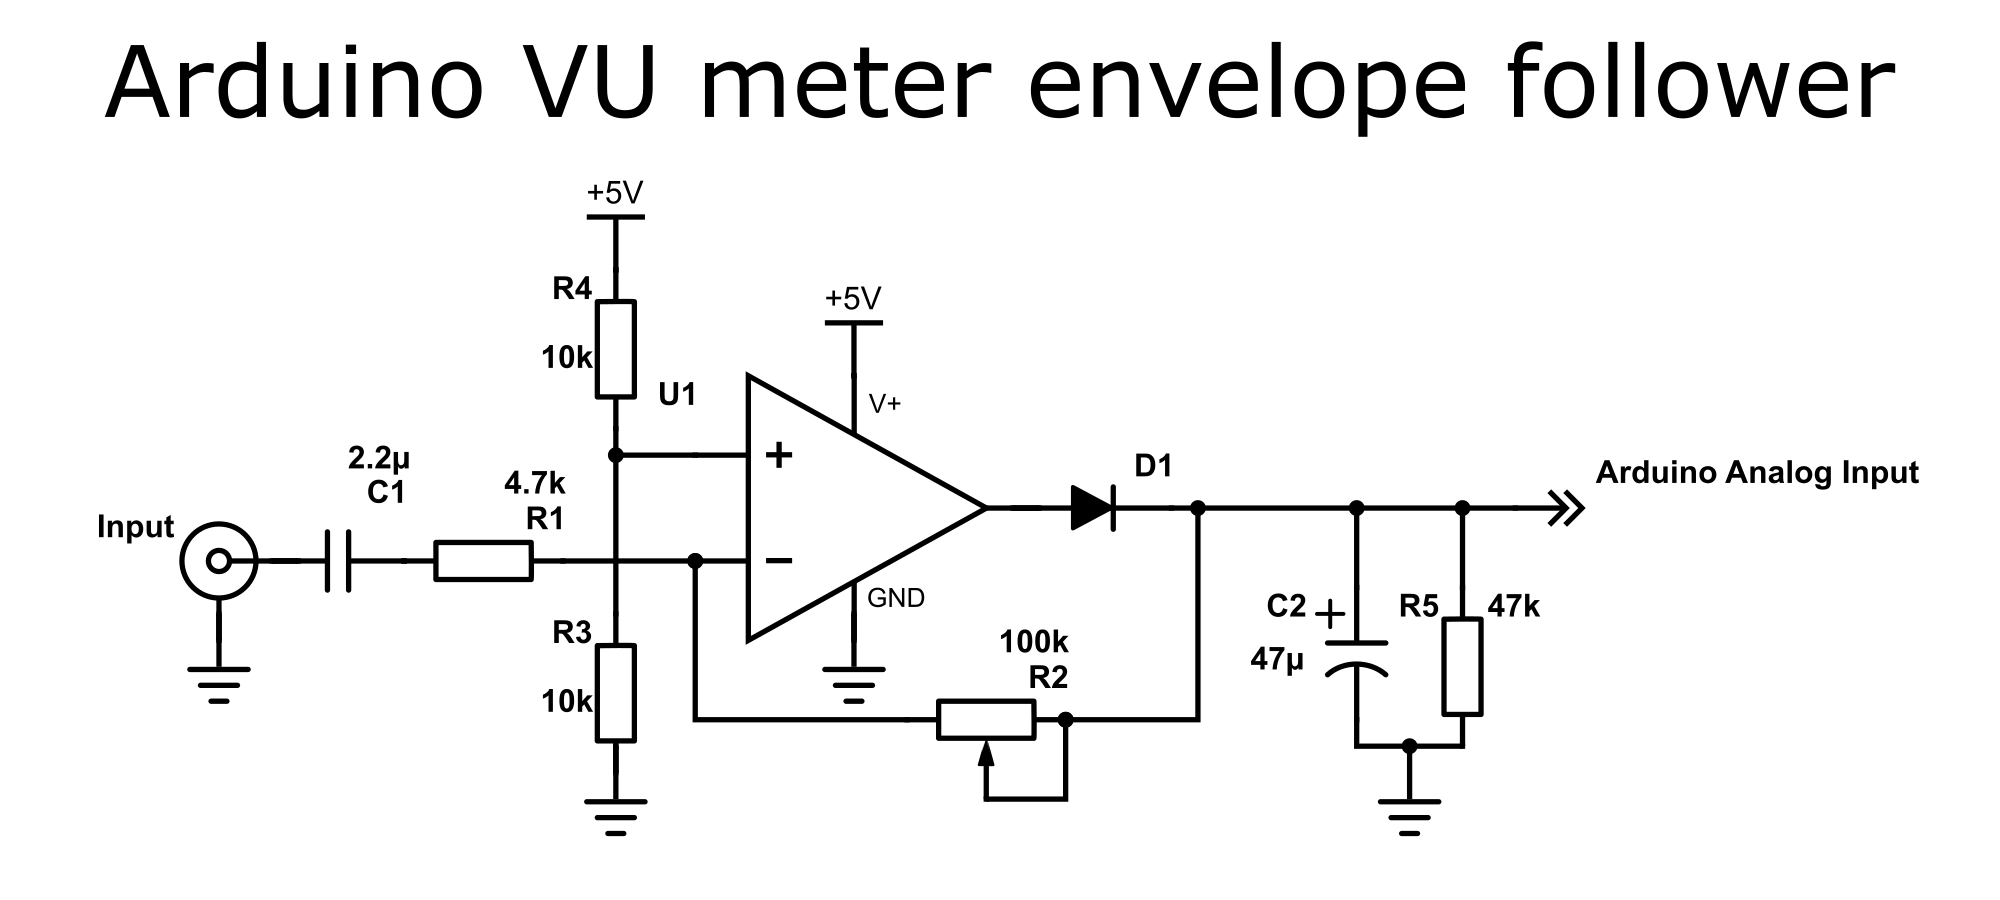 Xlr Microphone Vu Meter Voltage Follower Op Amp Circuit Its Very Similar To A Normal Inverting Amplifier But The Diode At Output Prevents Current Flowing Into When Of Is